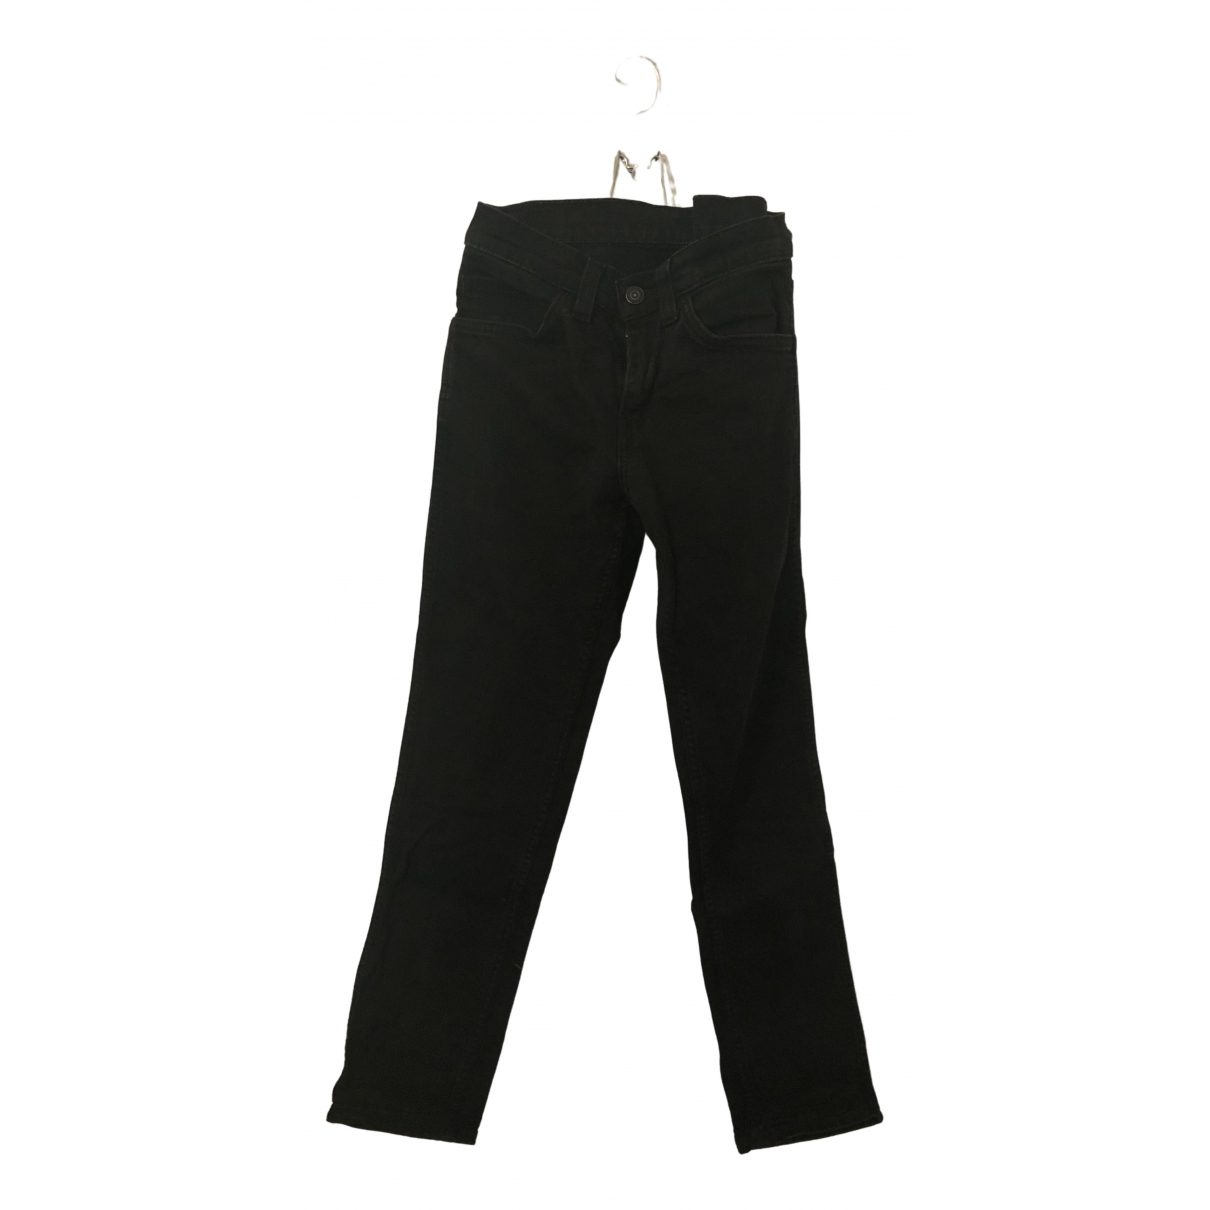 Levi's \N Black Denim - Jeans Trousers for Women 38 FR